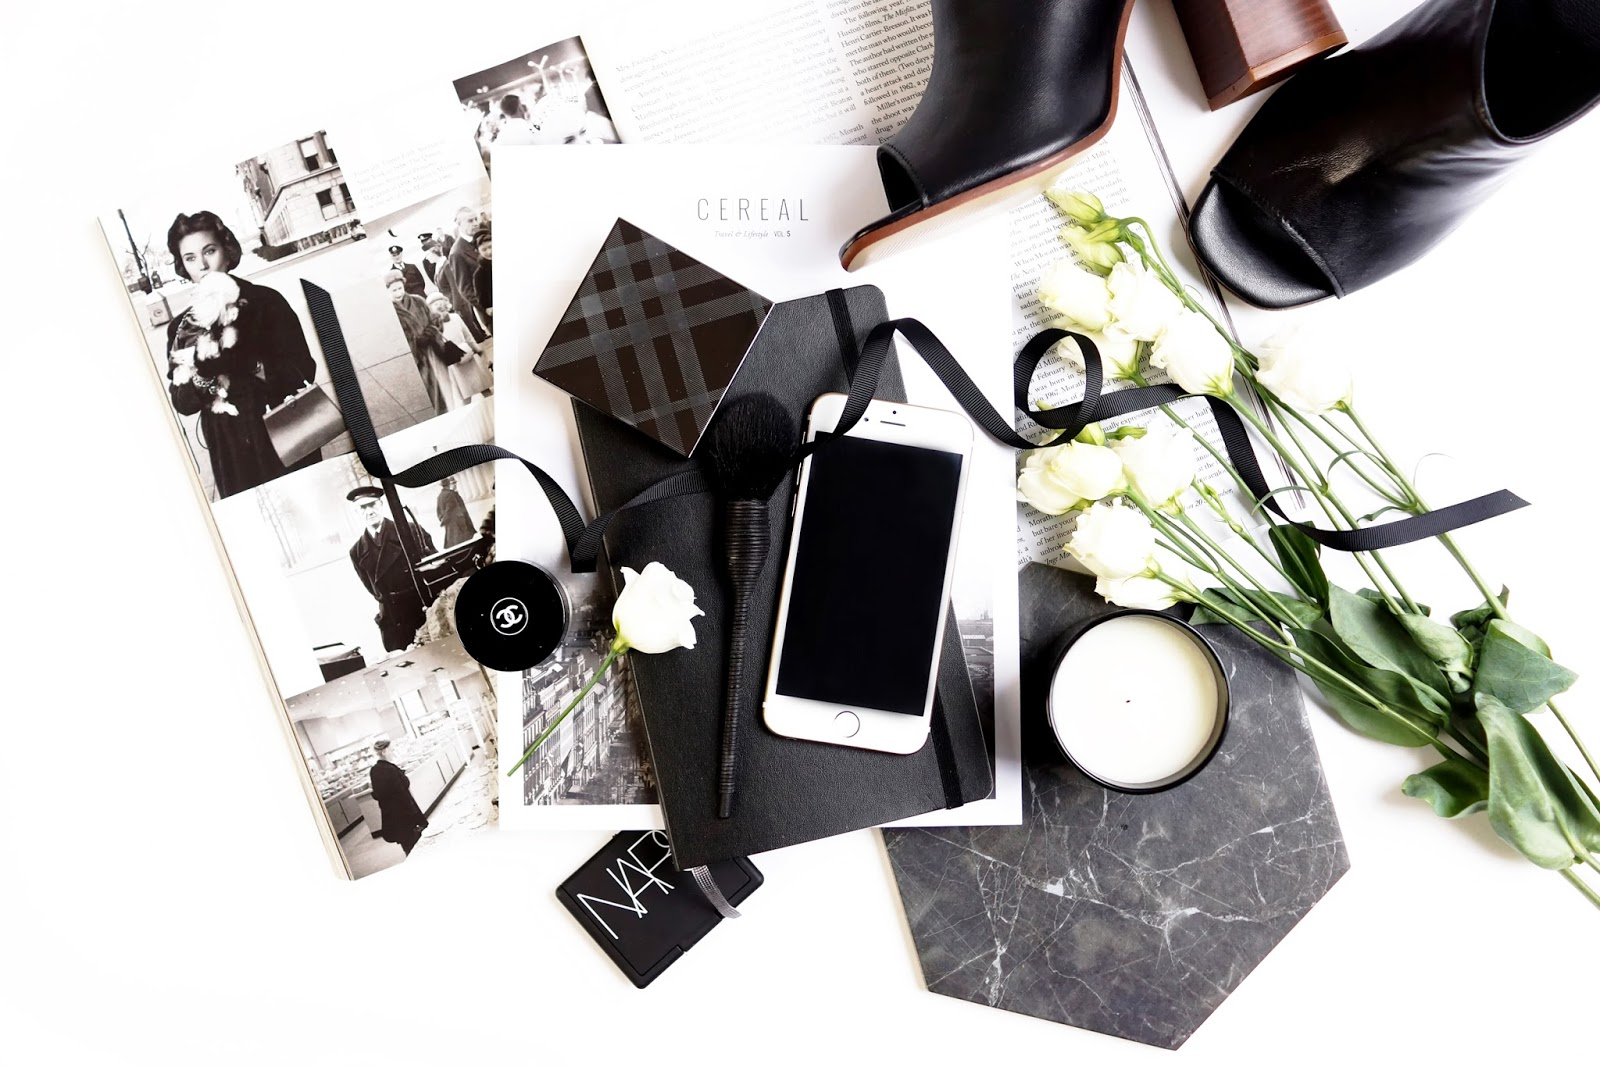 barely-there-beauty-style-lifestyle-flatlay-photography-digital-detox-tips